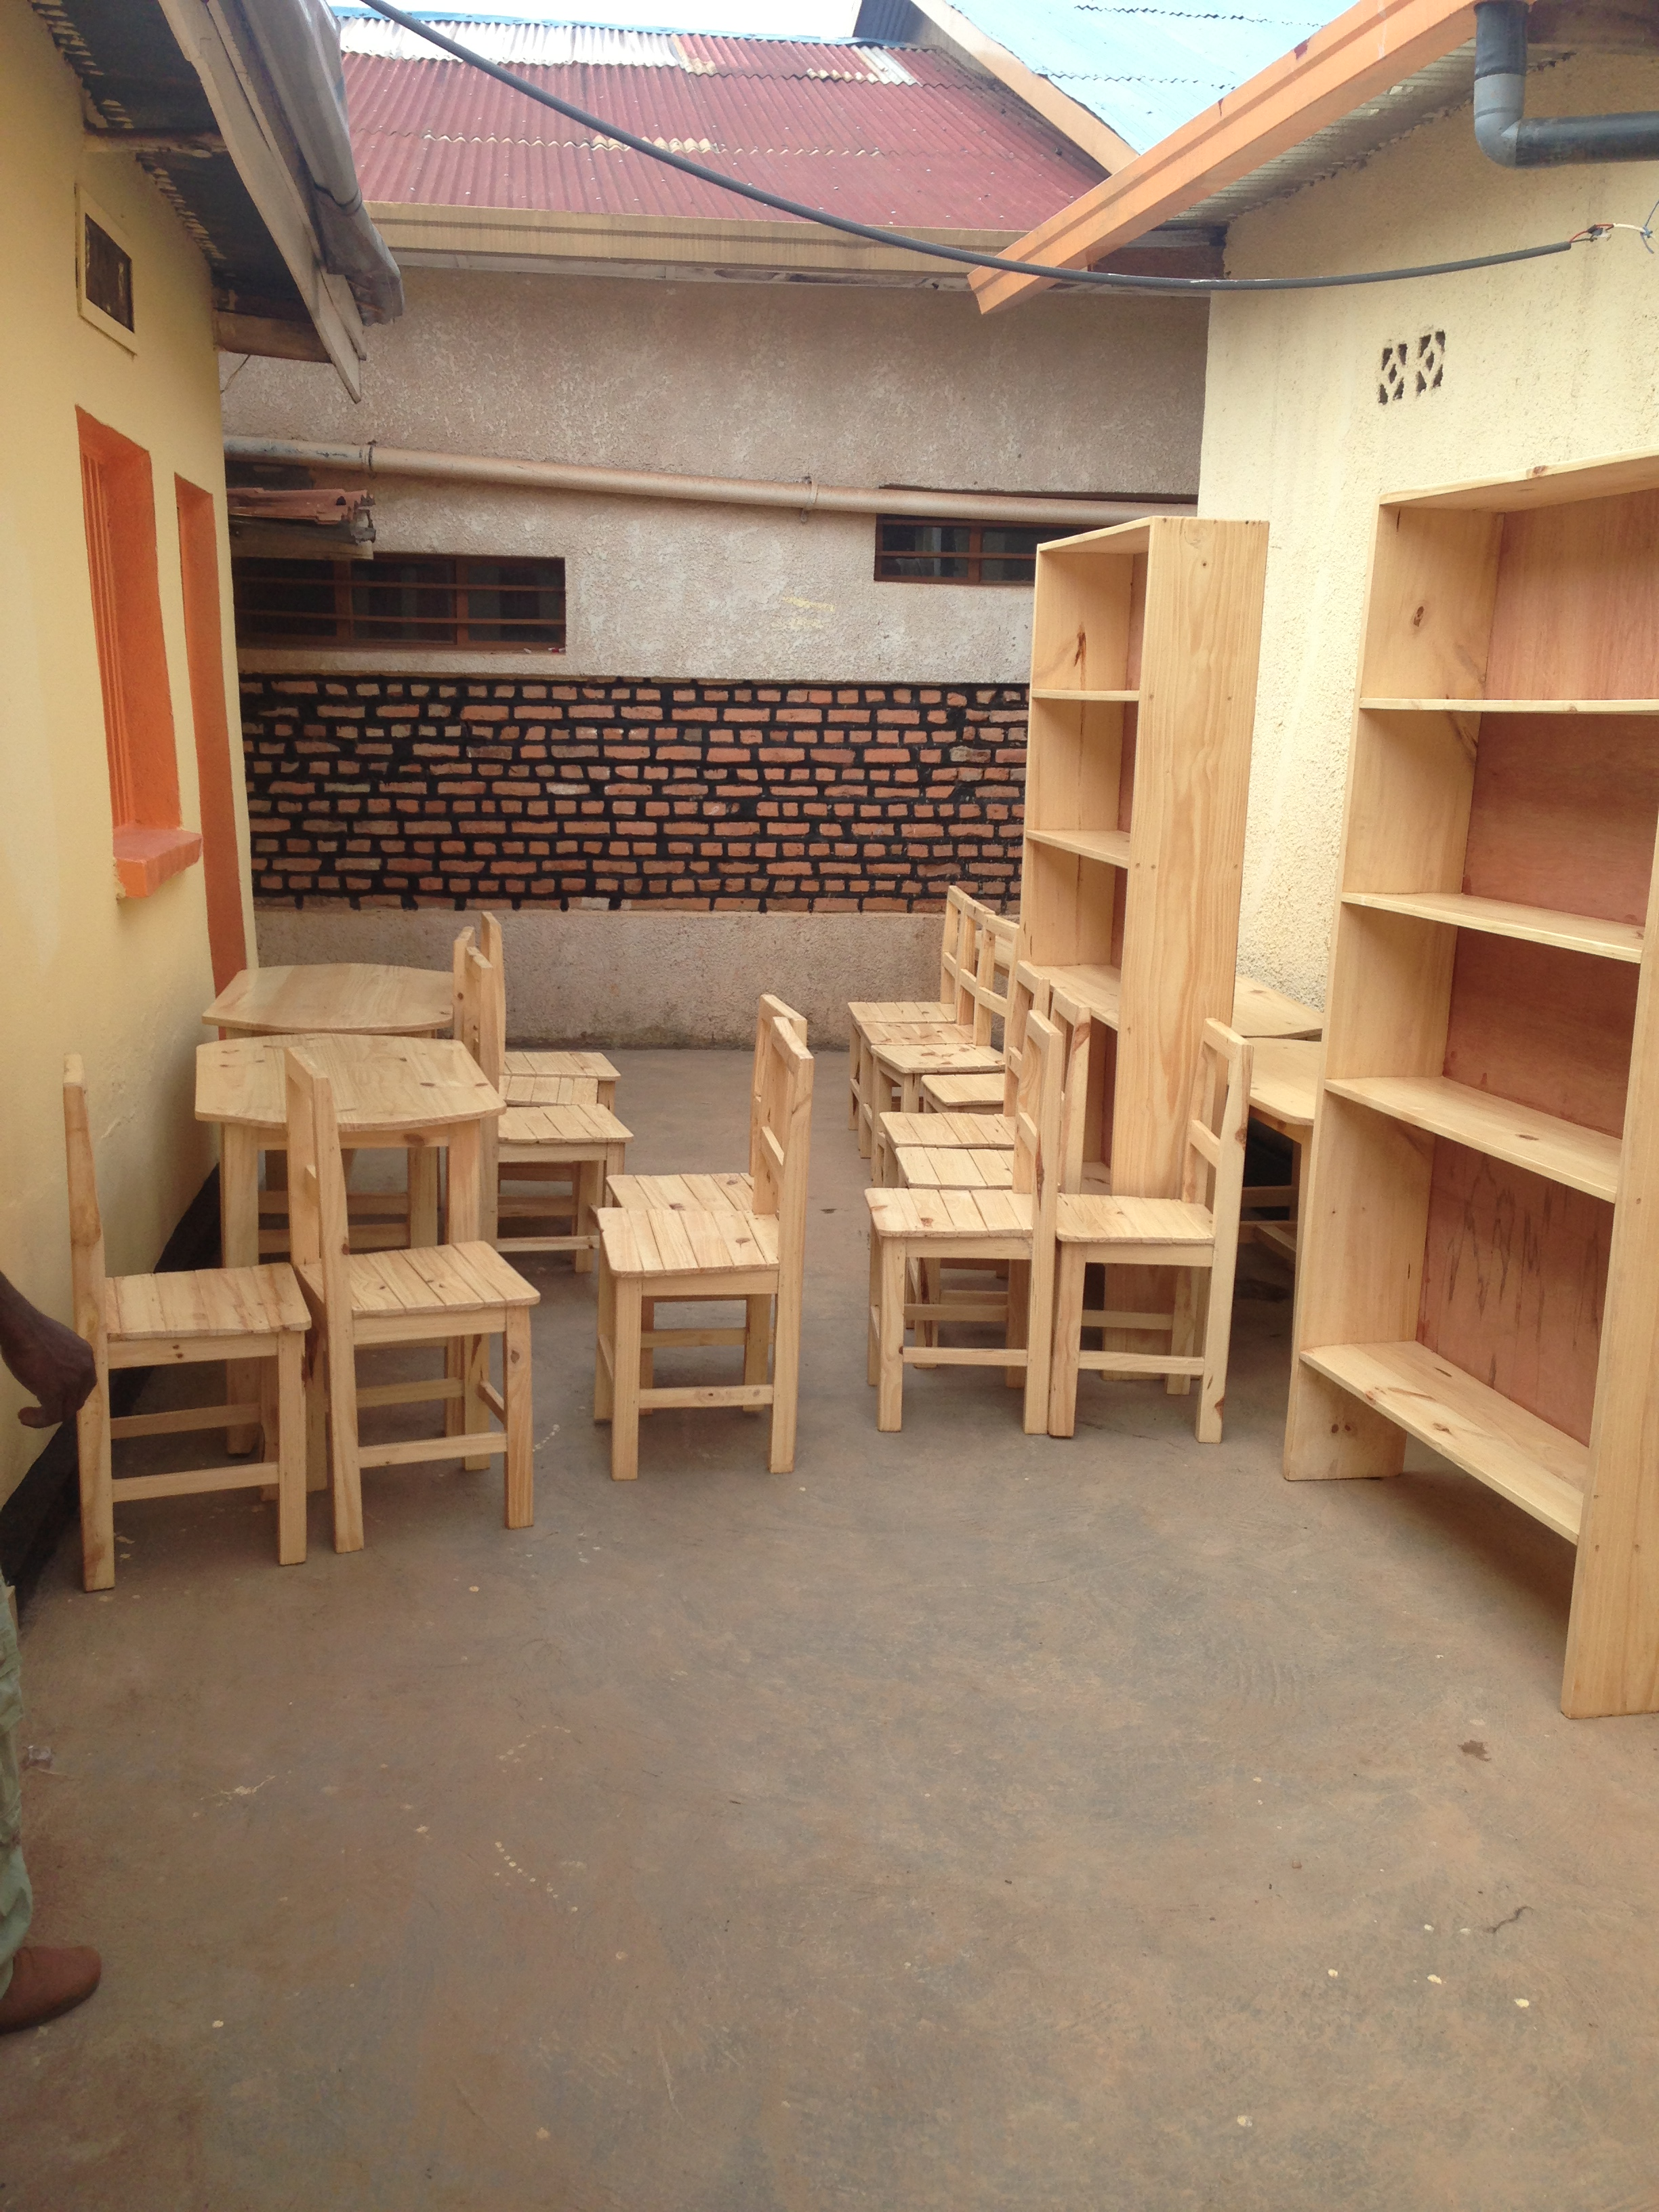 kigali reading center the furniture is coming kigali reading center